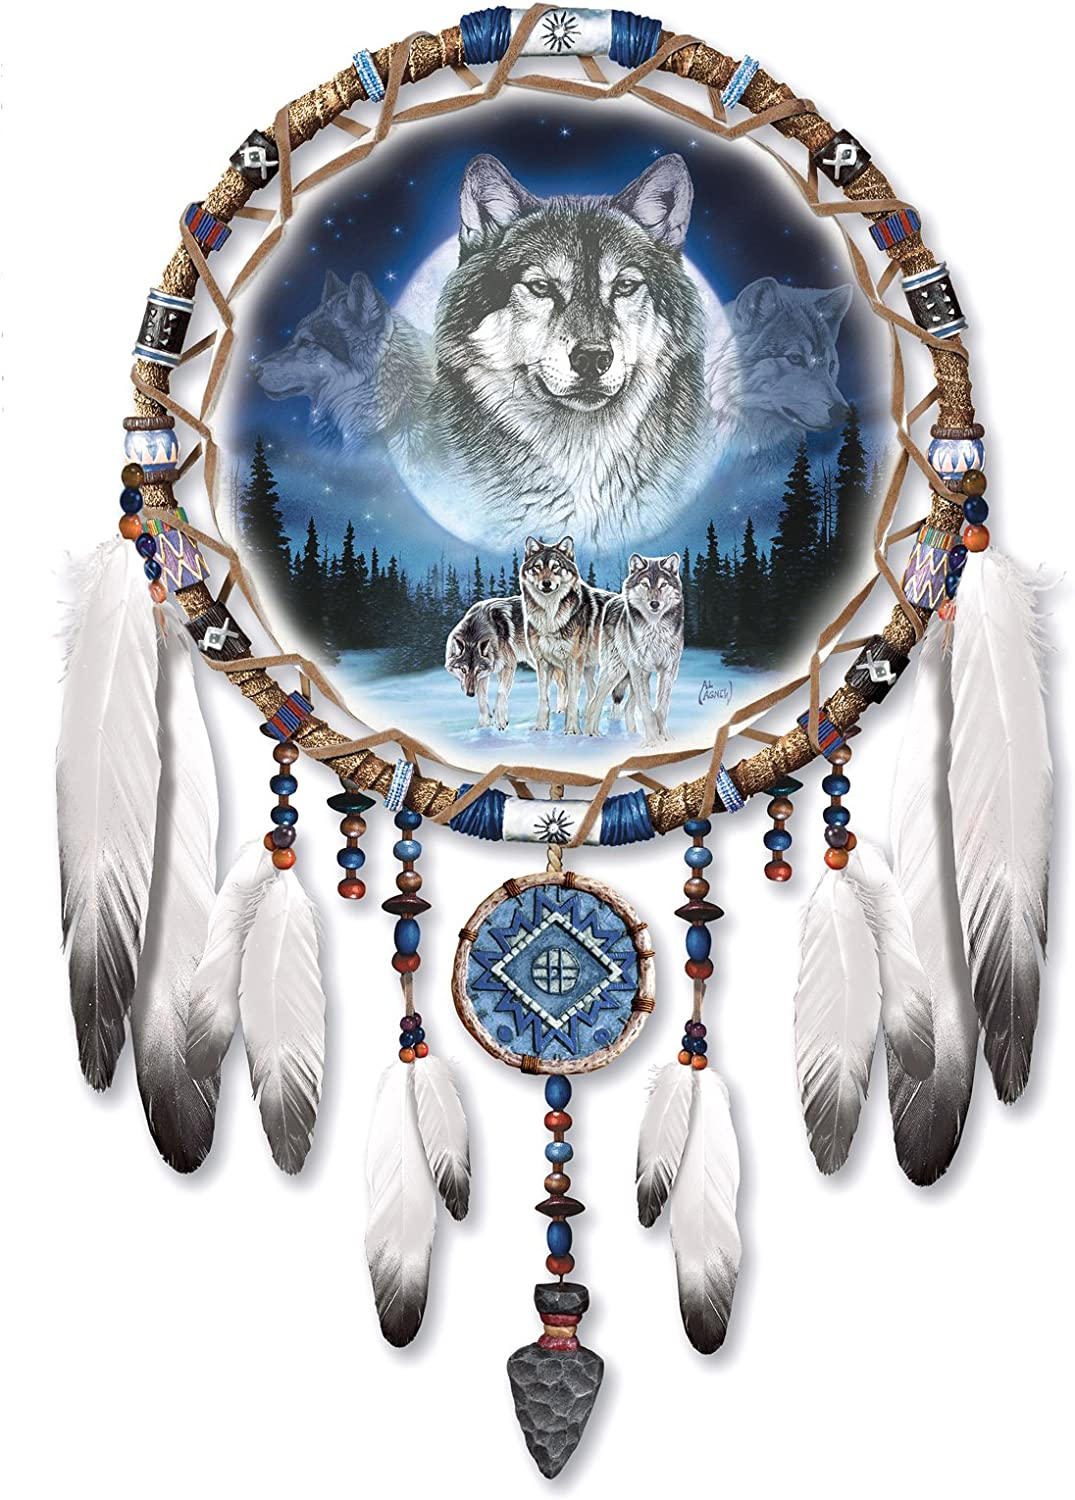 The Bradford Exchange 'Dreams of the Wild' - Native American Dreamcatcher  Style Wall Décor with Wolf Artwork: Amazon.co.uk: Kitchen & Home